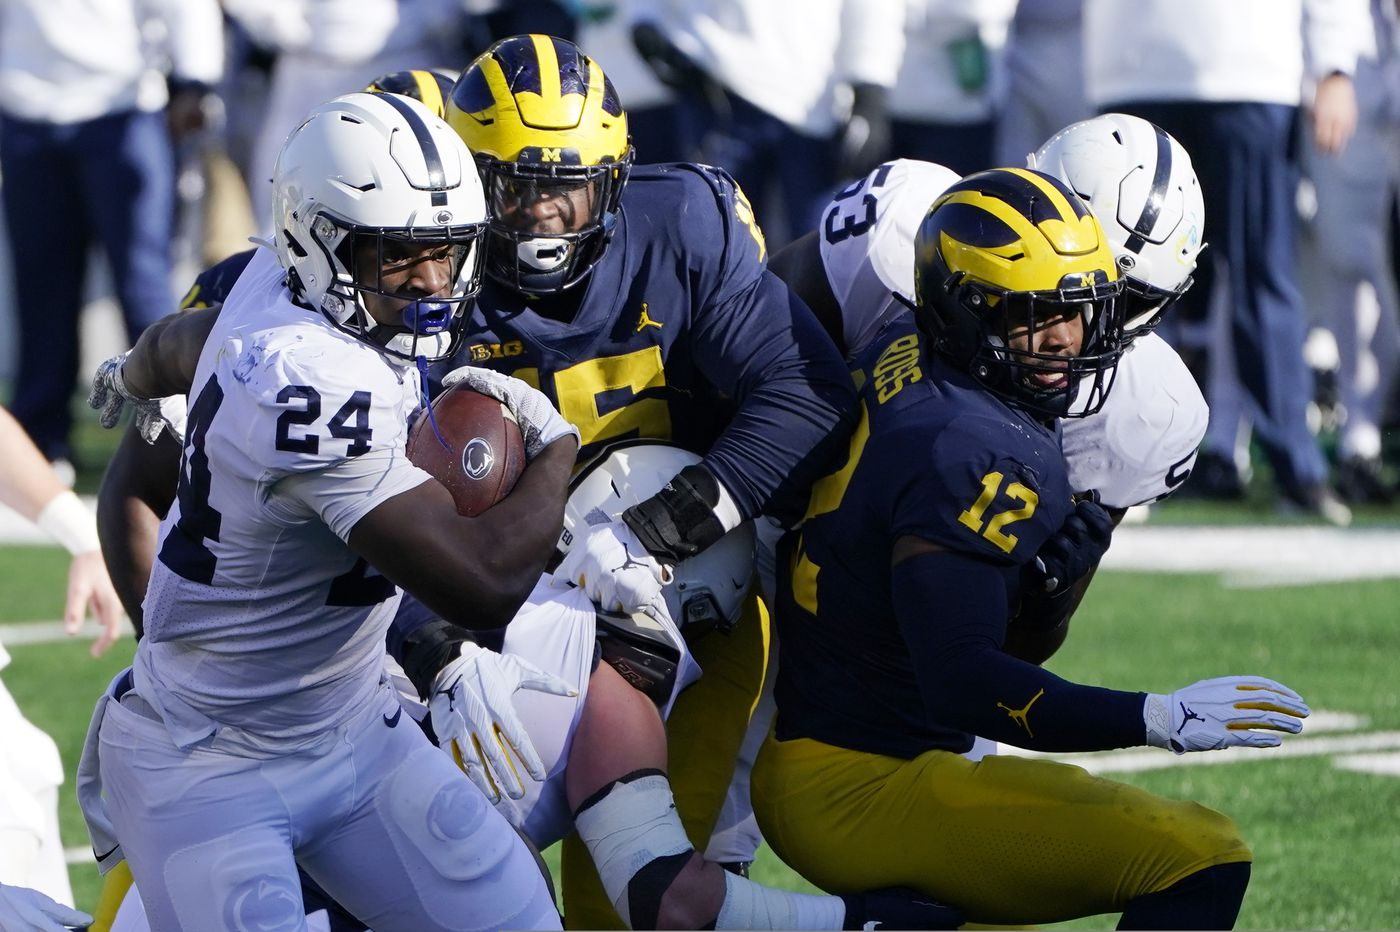 Penn State 27, Michigan 17: Four takes on the Nittany Lions' first victory of the season